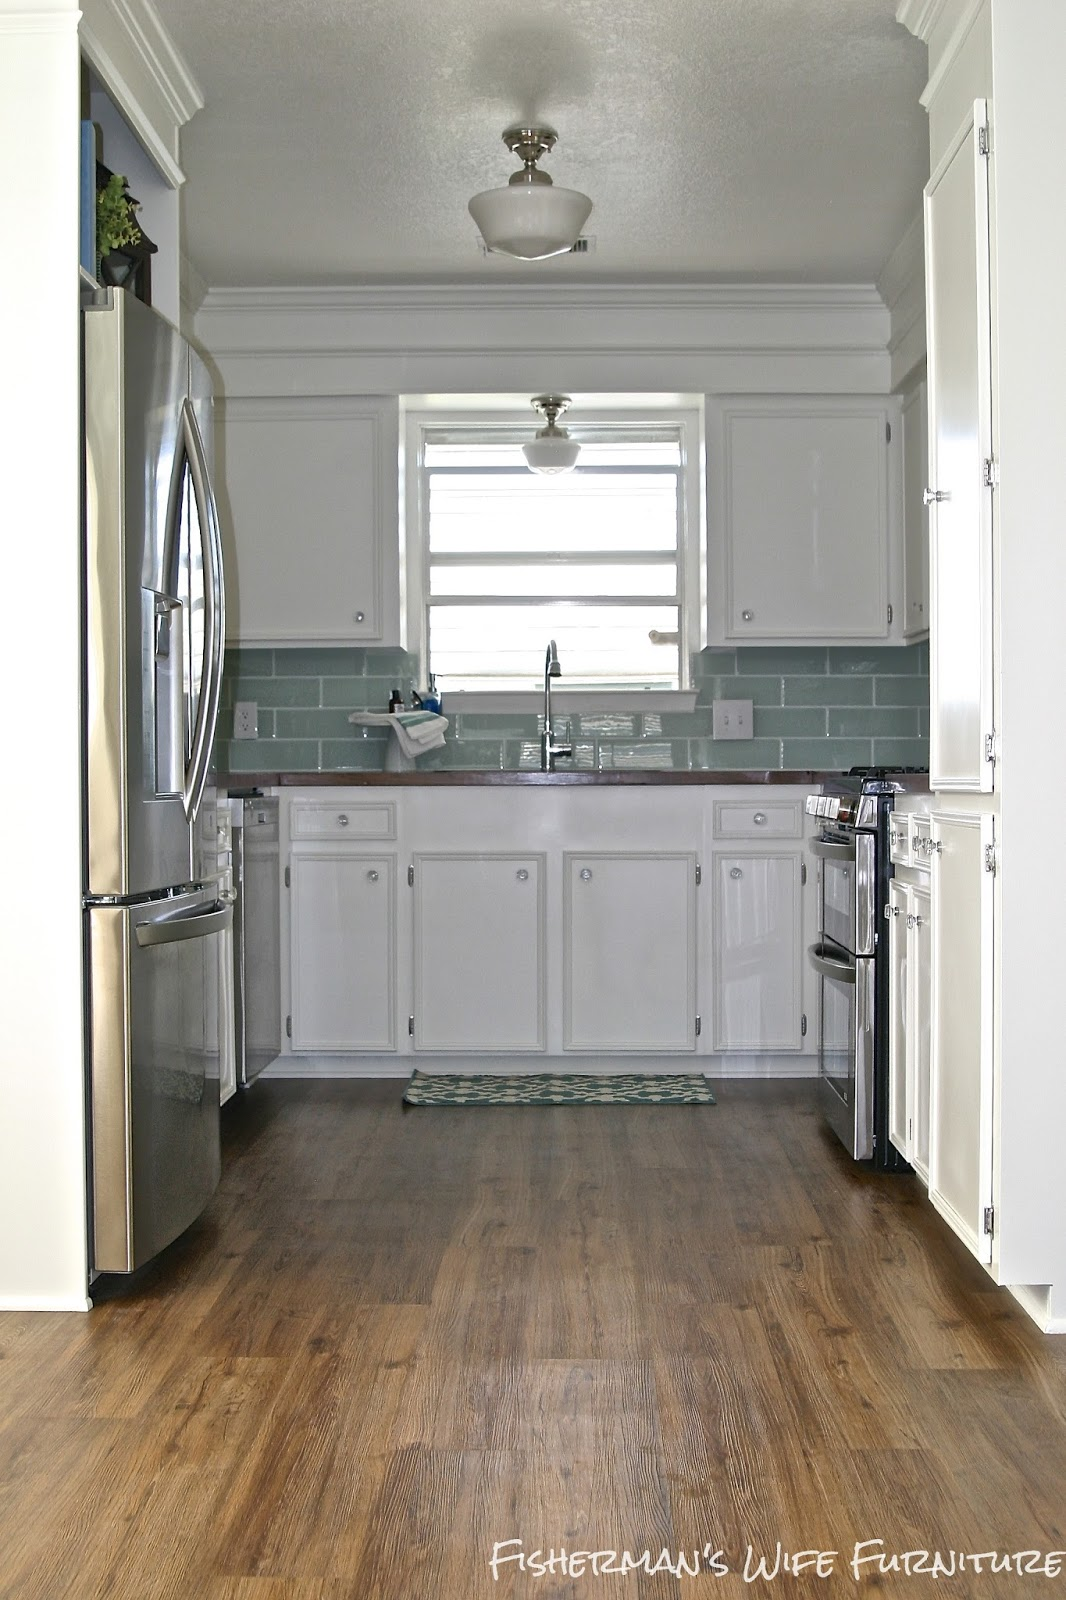 Remodelaholic   Small White Kitchen Makeover with Built-In ... on Small Kitchen Renovation  id=50657